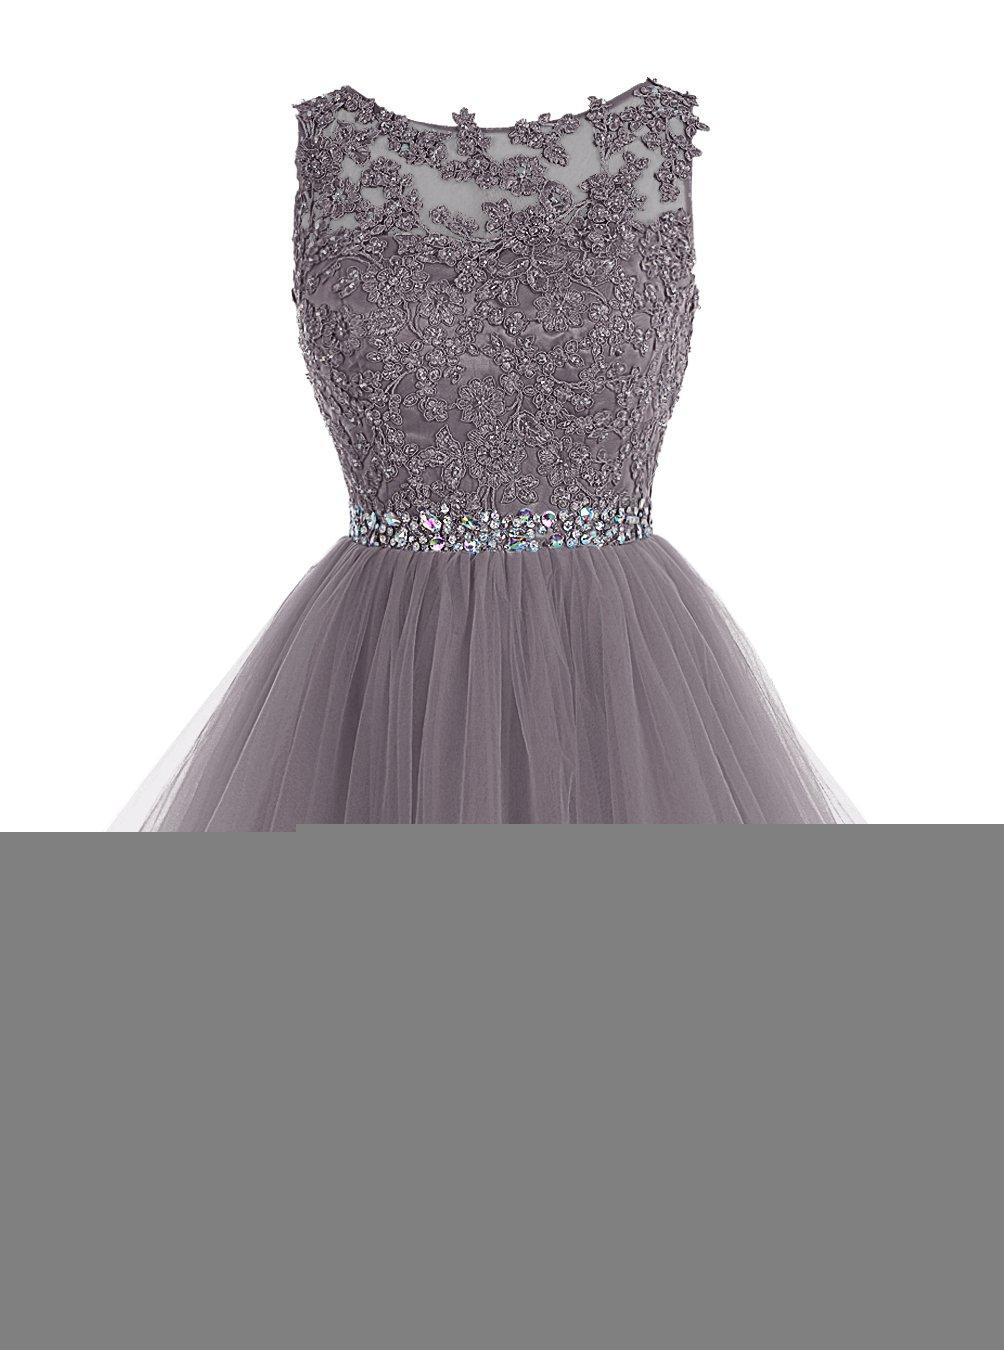 ALAGIRLS Short Beaded Prom Dress Tulle Applique Homecoming Dress Grey US20Plus